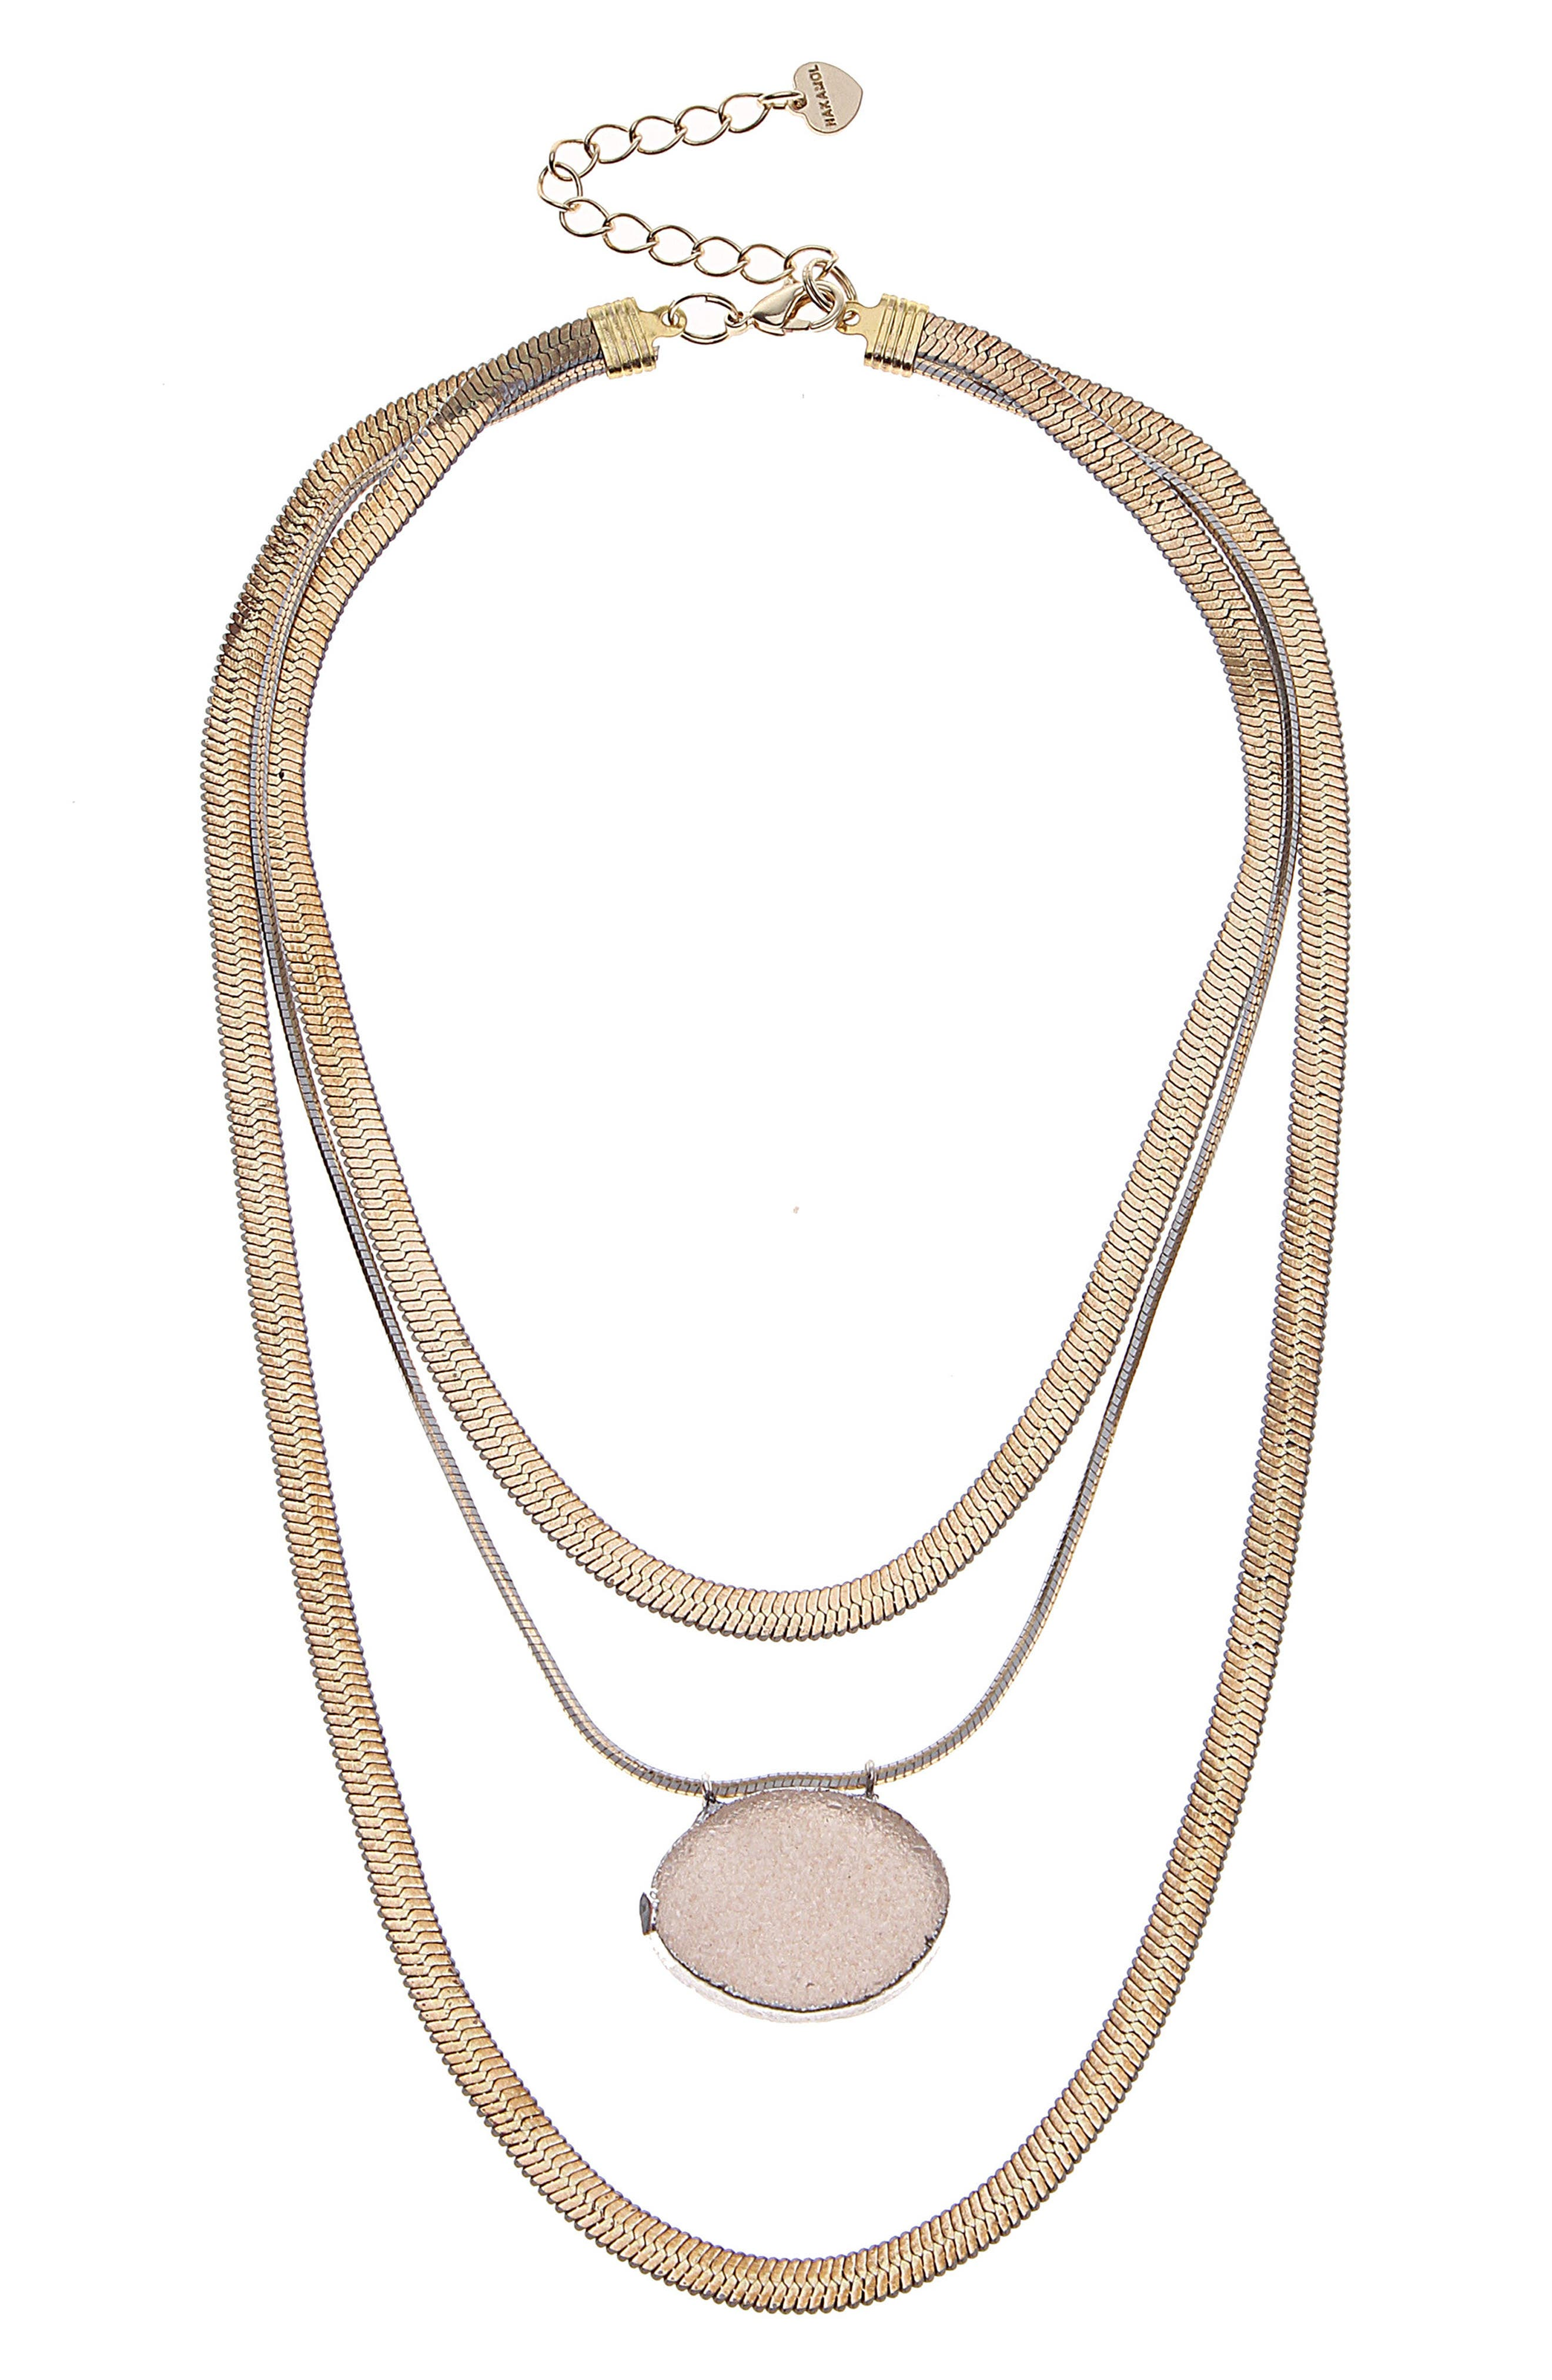 Layered Snake Chain & Drusy Pendant Necklace,                             Main thumbnail 1, color,                             710